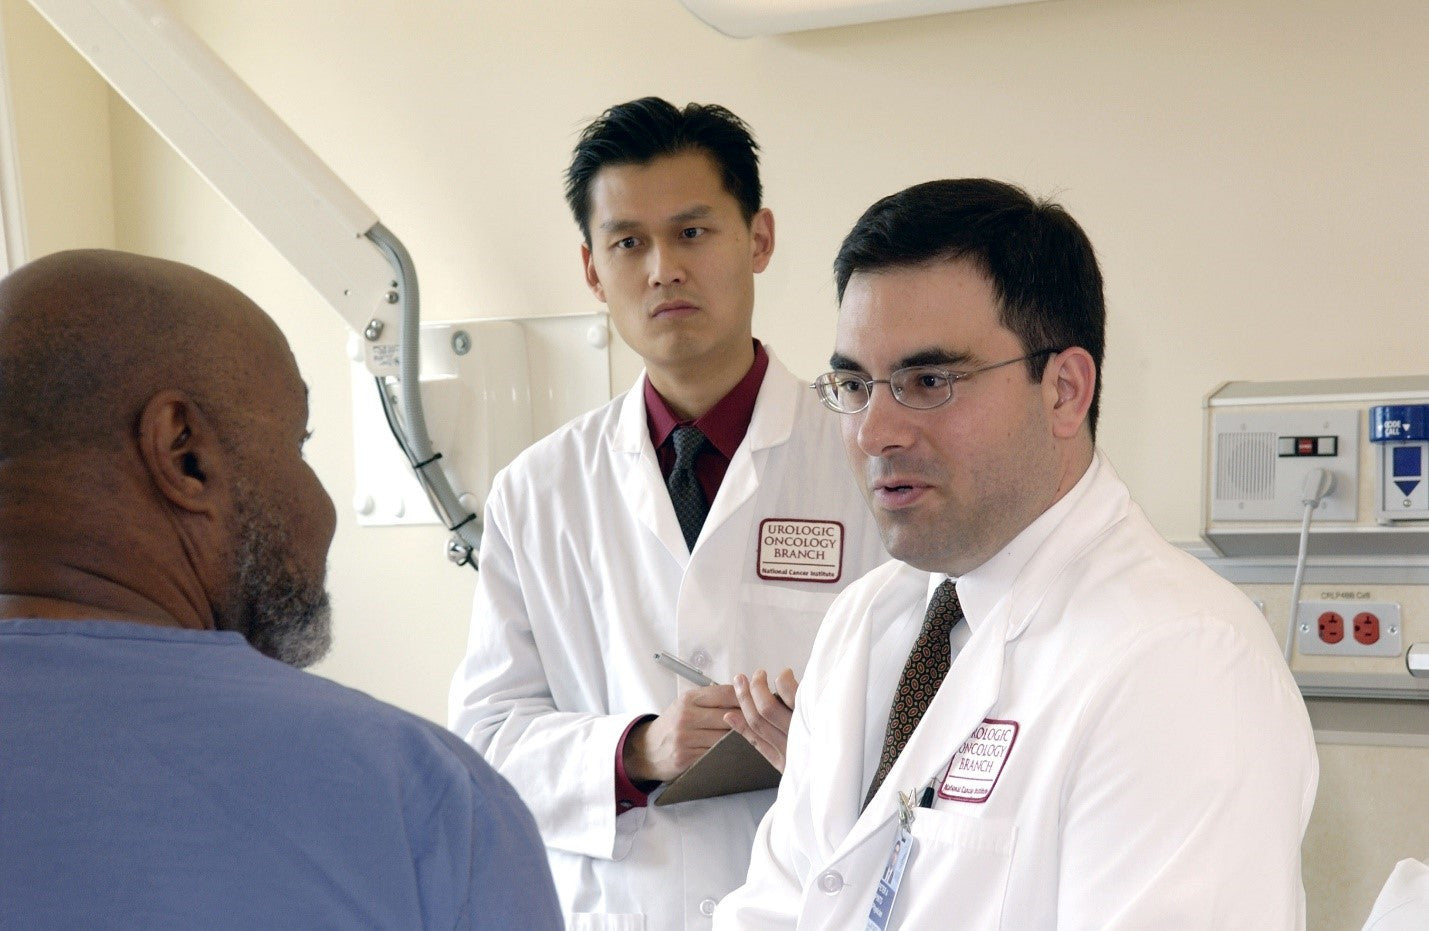 6 Things Doctors Hate Hearing From Patients